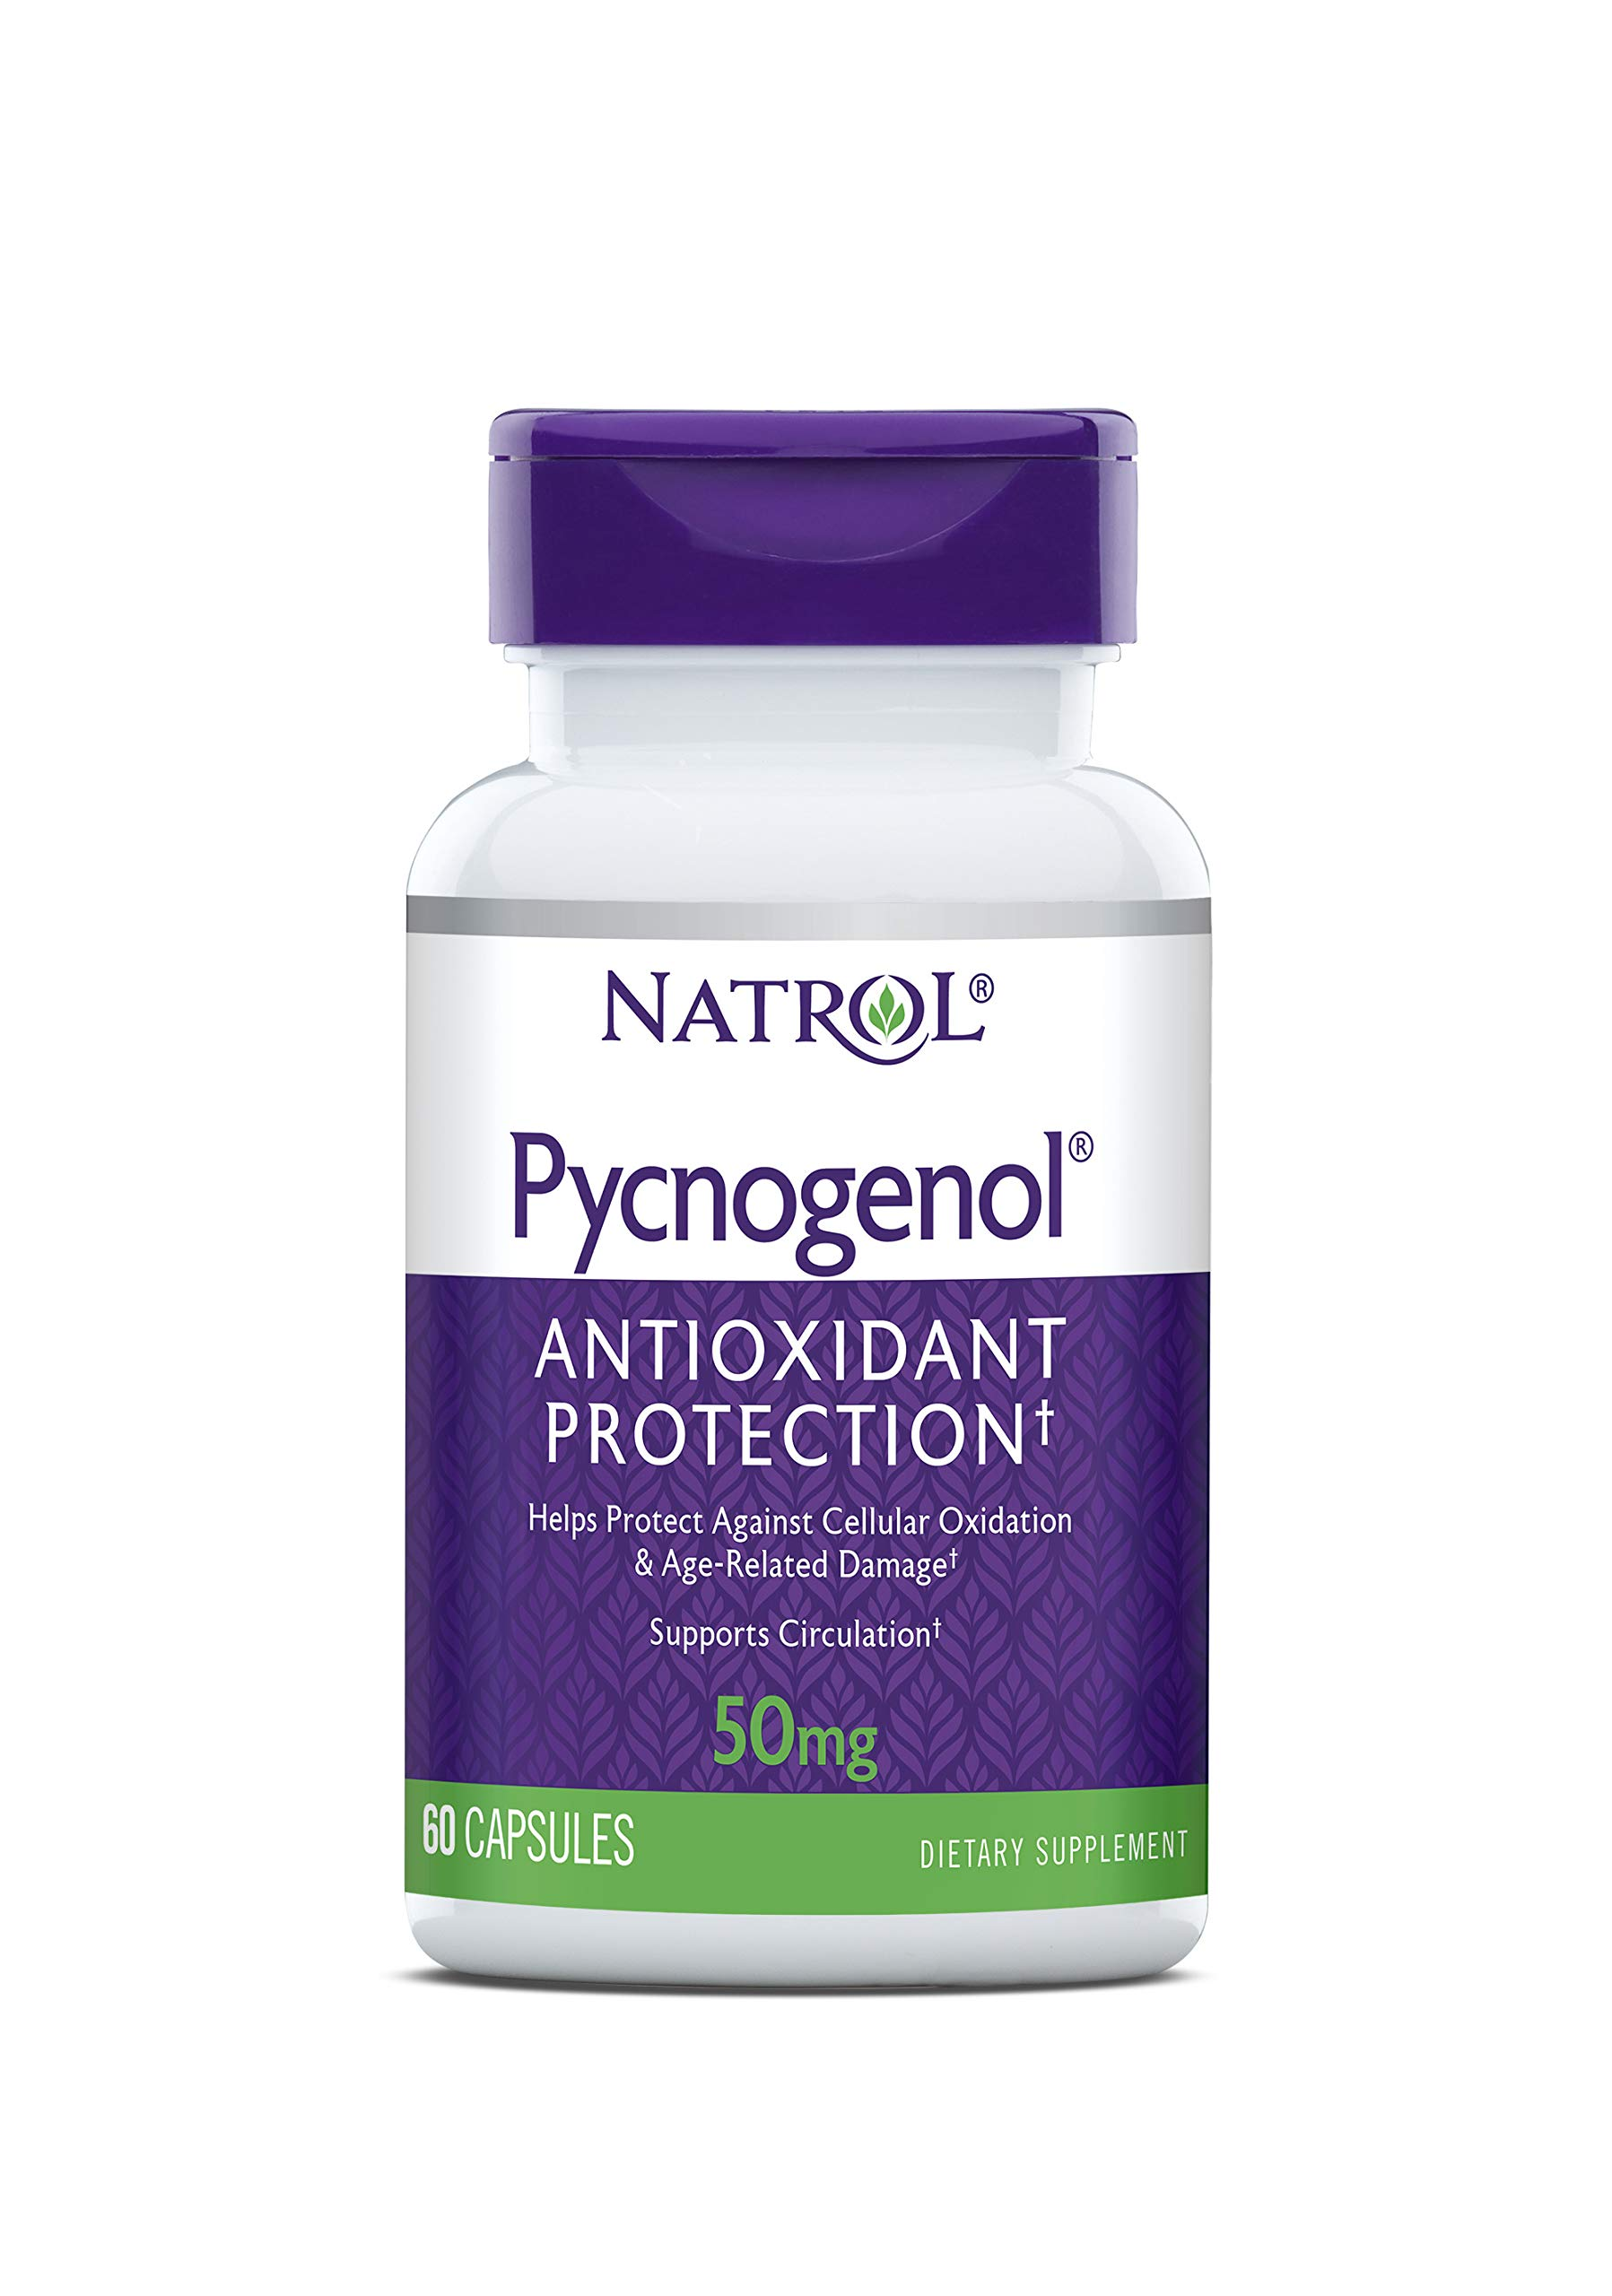 Natrol Pycnogenol Capsules, Antioxidant Protection, Protects Against Cellular Oxidation and Age-Related Damage, European Maritime Pine Bark Extract, Supports Circulation, 50mg, 60 Count by Natrol